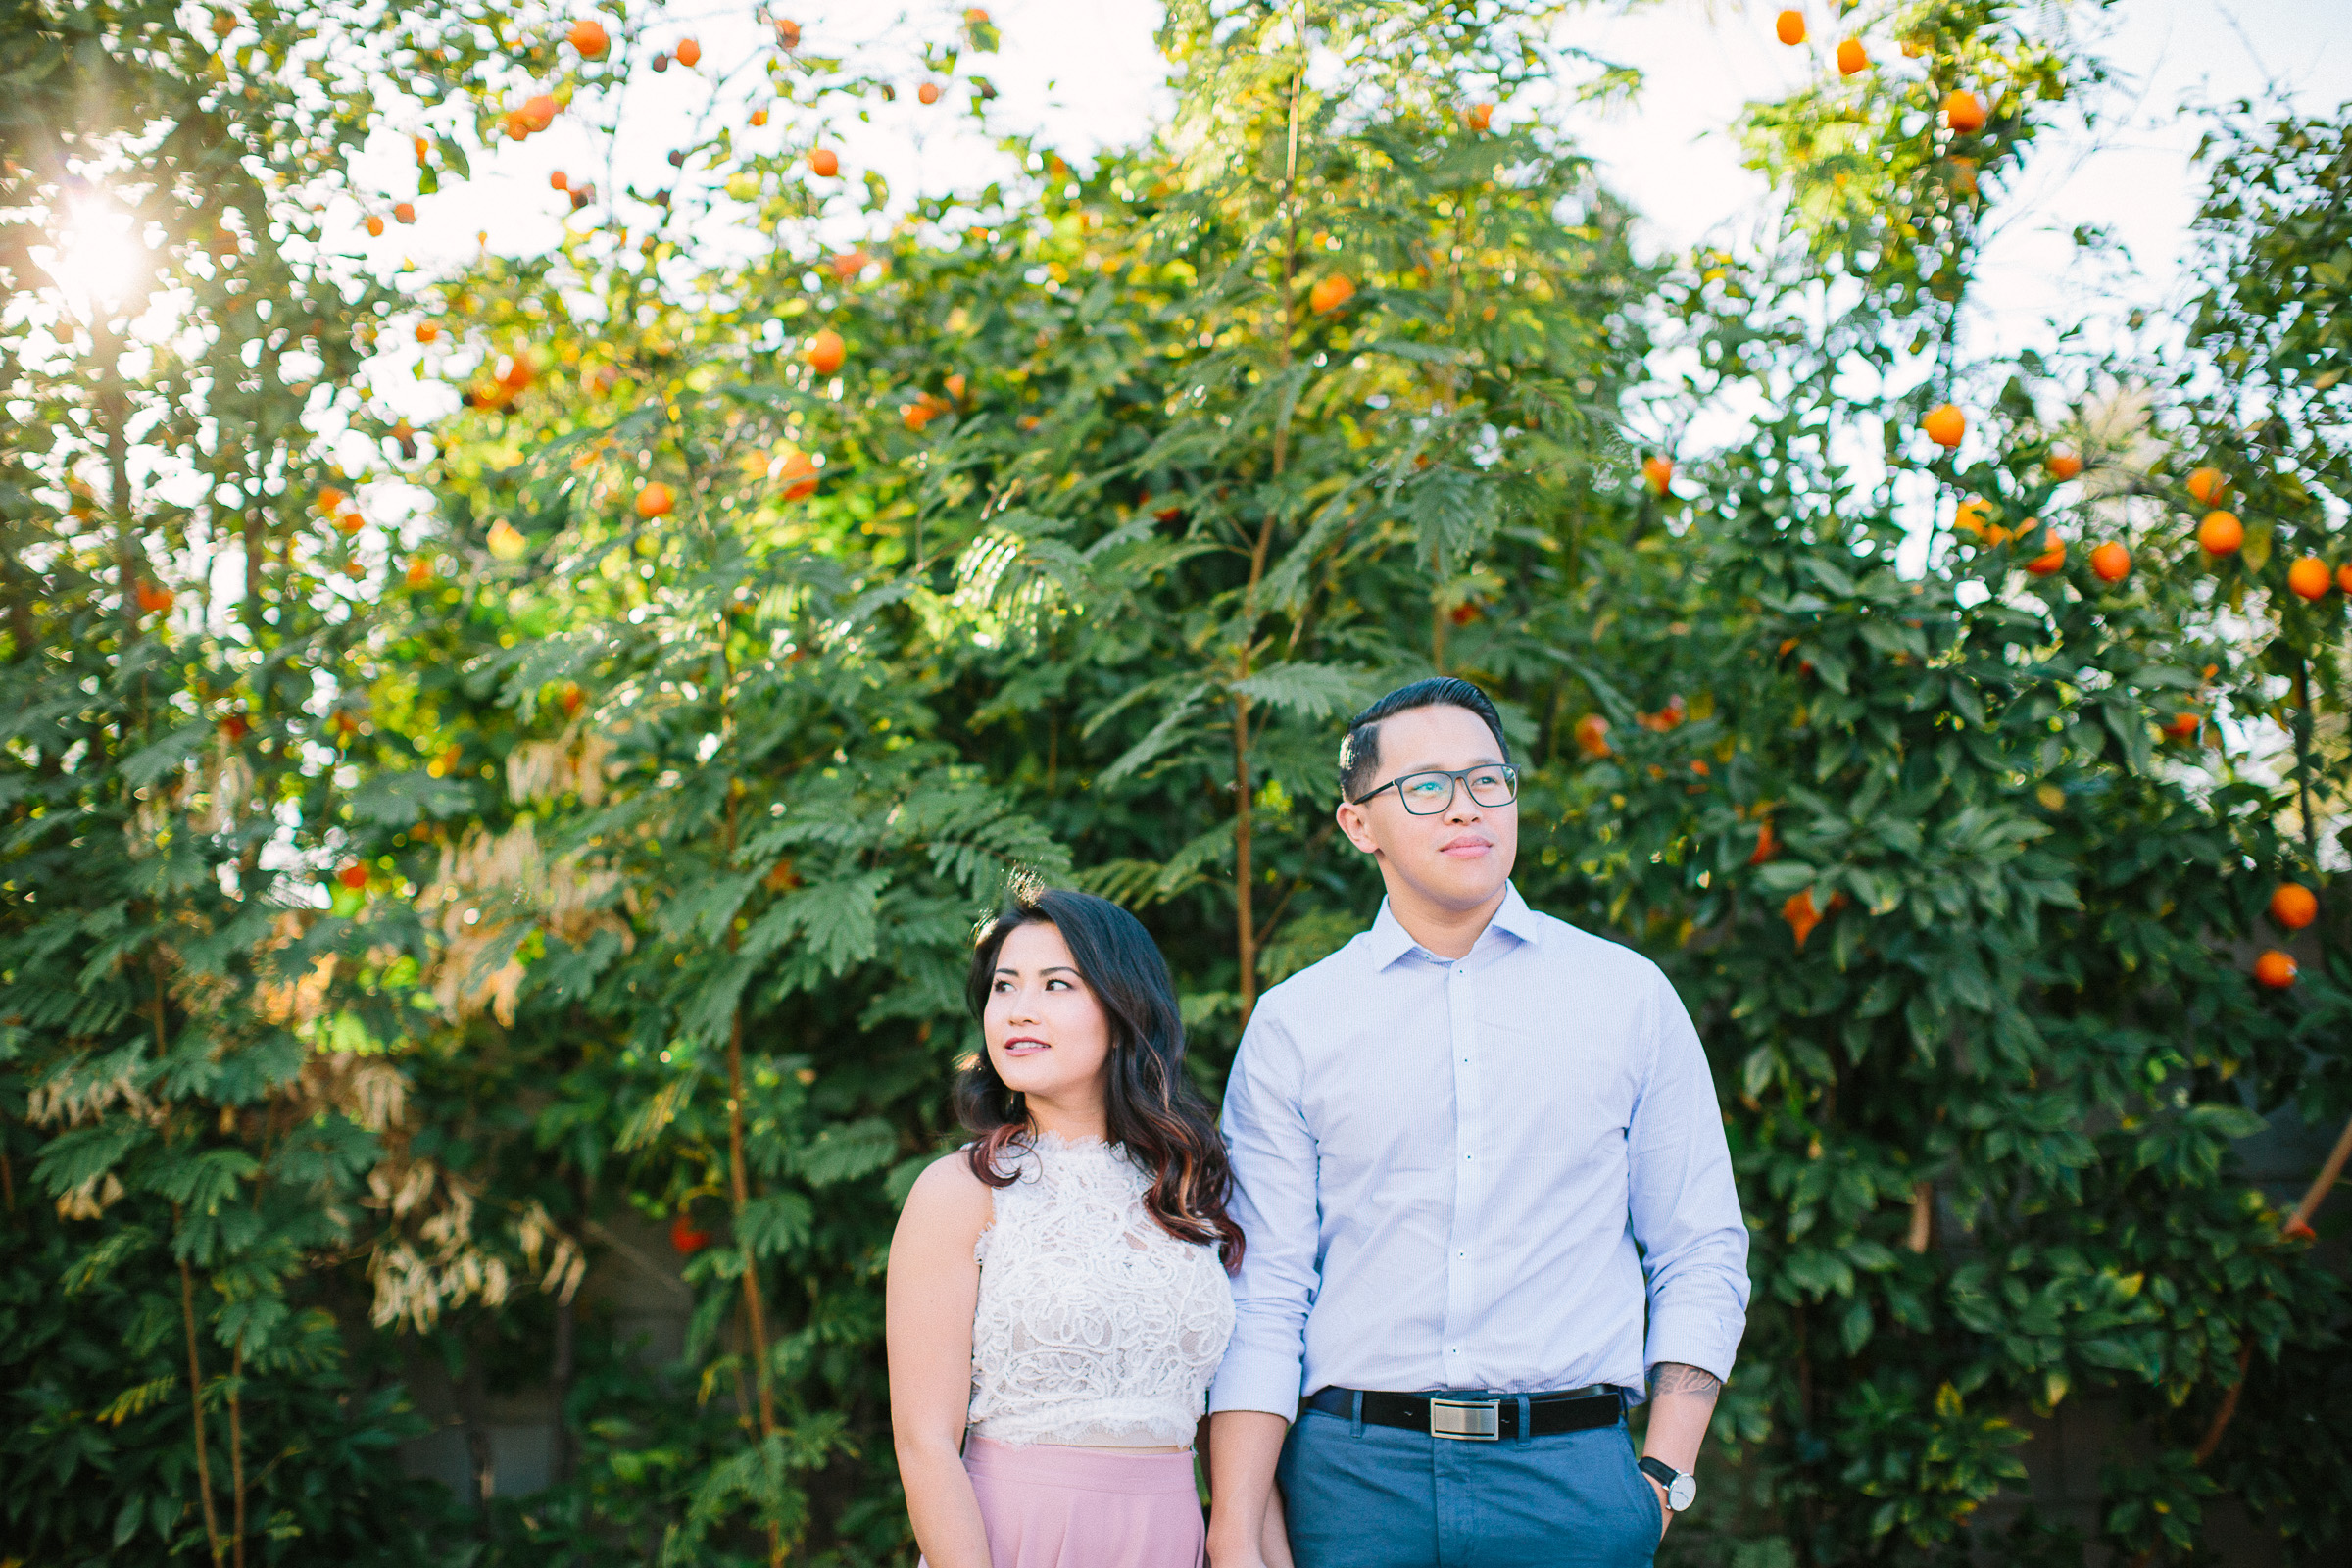 180305-Luxium-Weddings-Arizona-Jared-Vi-Engagement-Phoenix-Tempe-Scottsdale-Secret-Garden-1.jpg